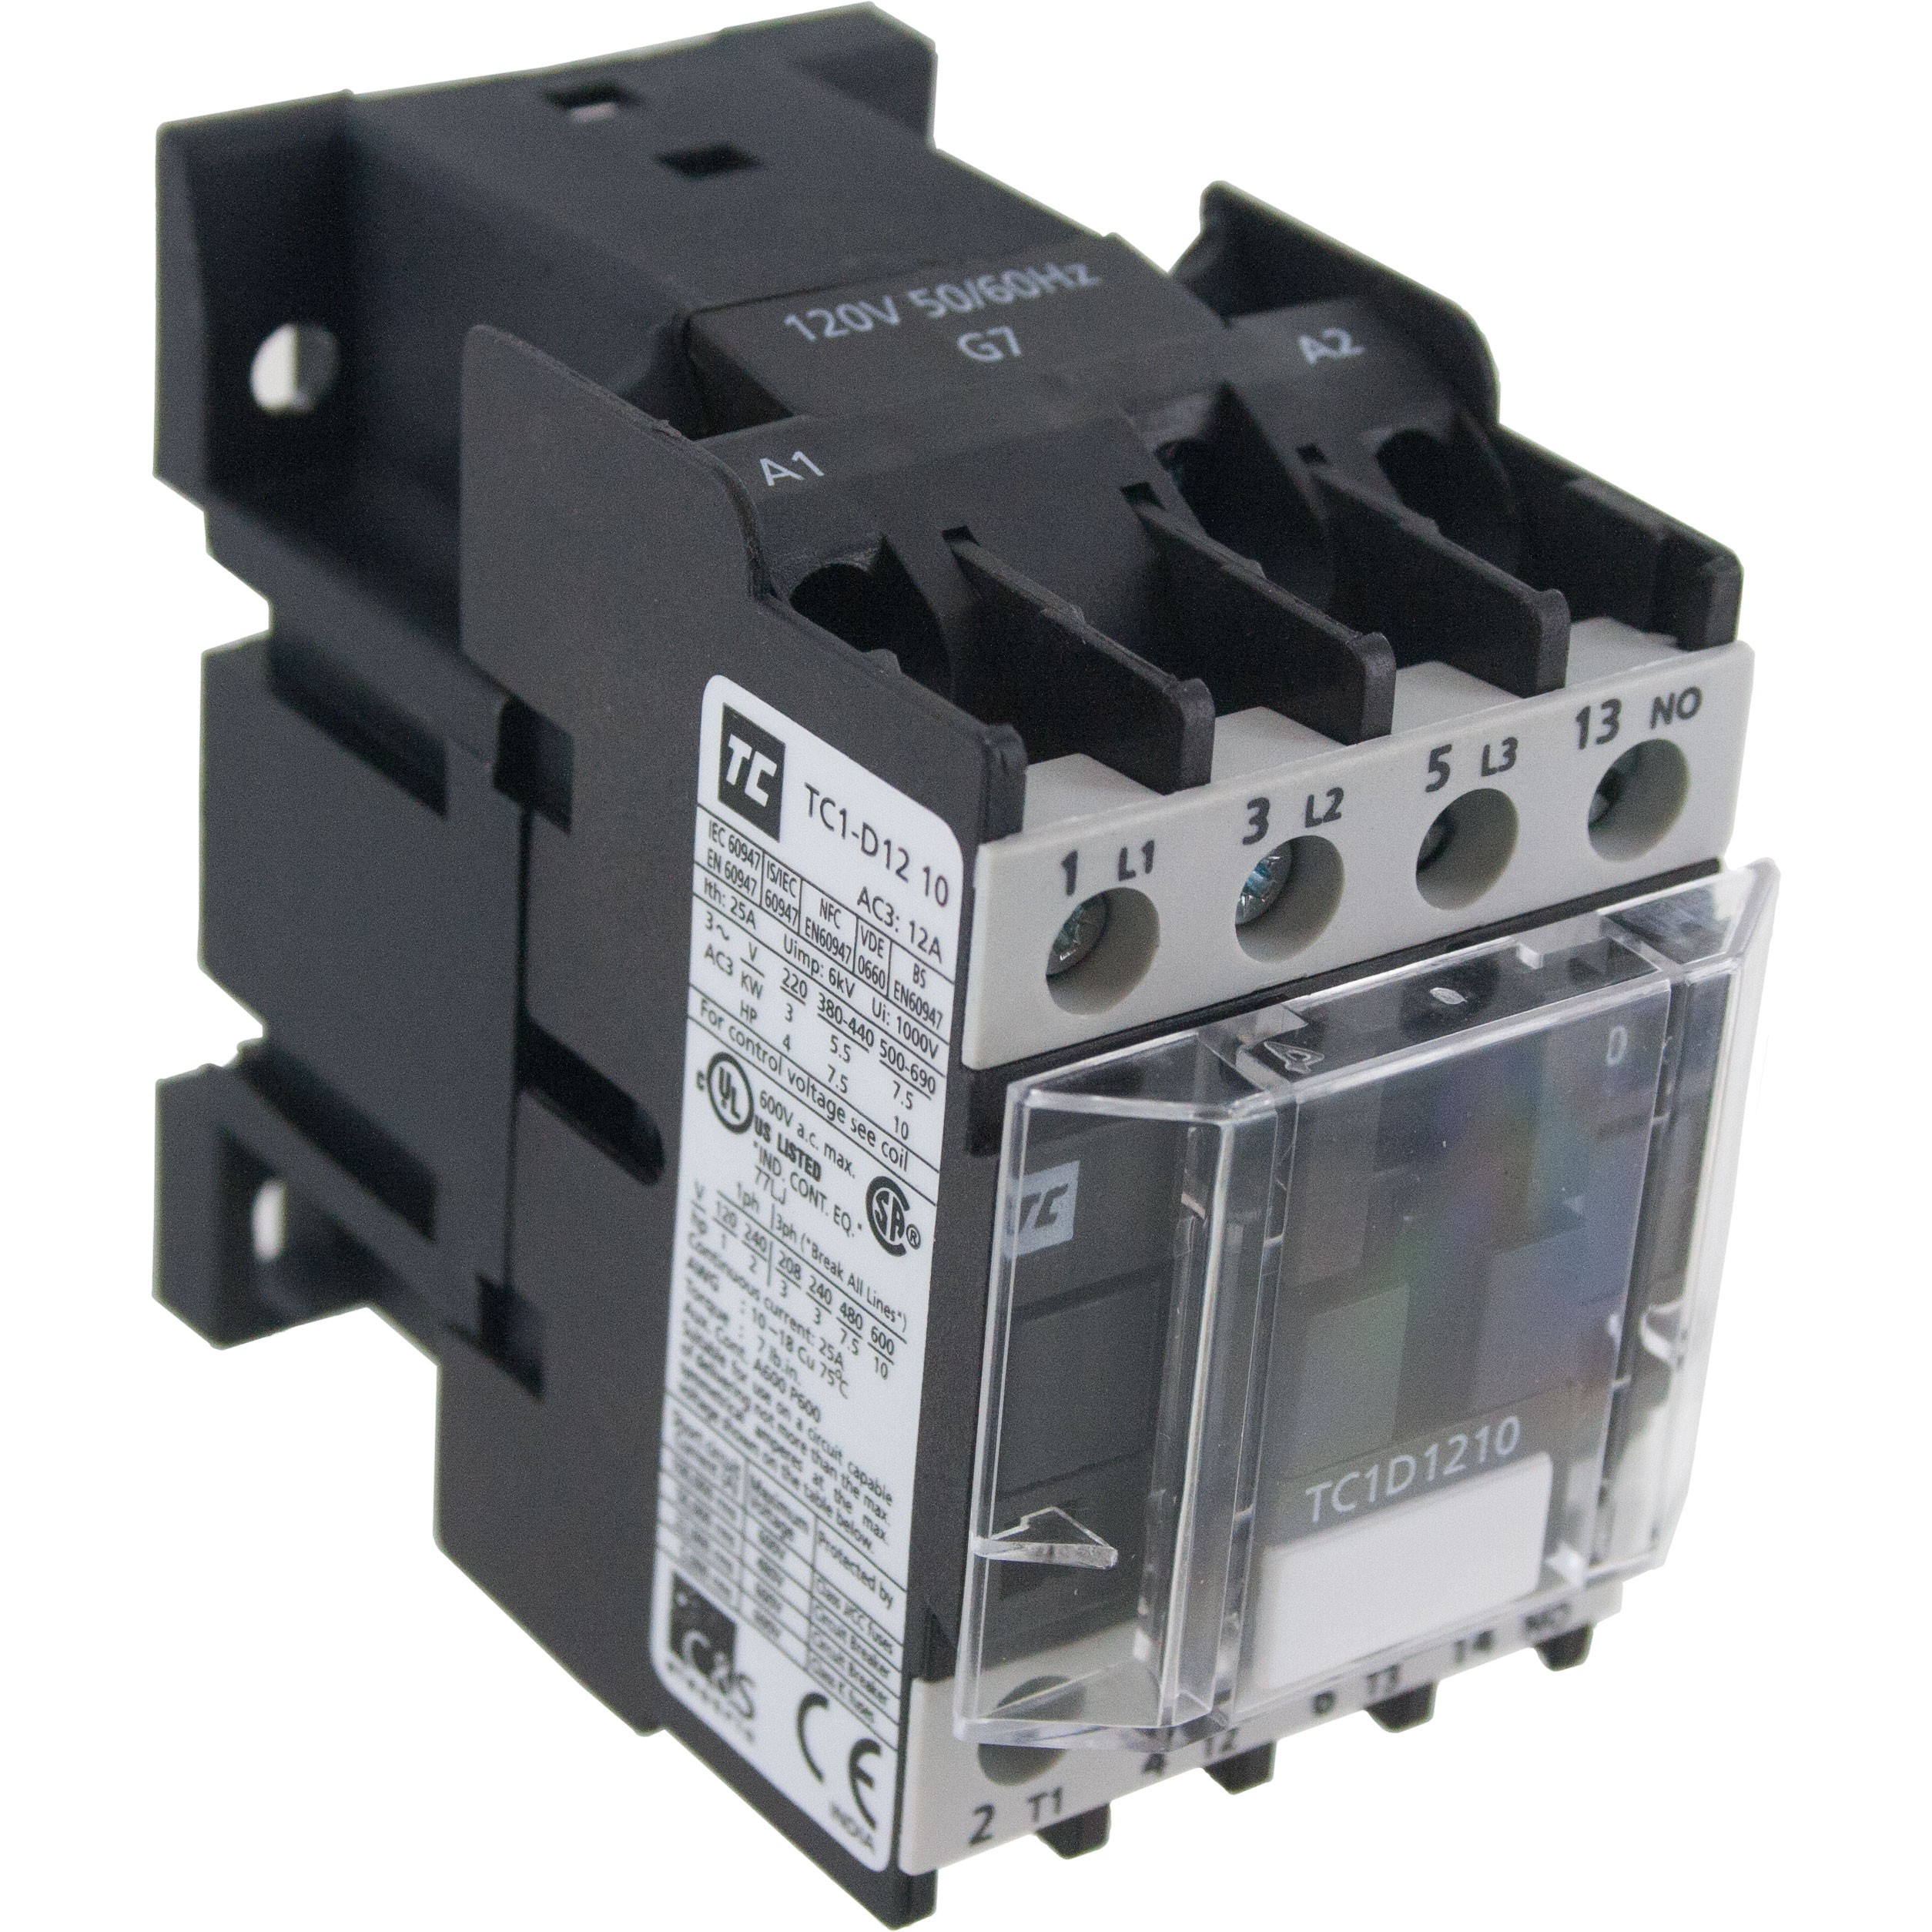 3 Pole Contactor 12 Amp 220 Vac Coil Angle